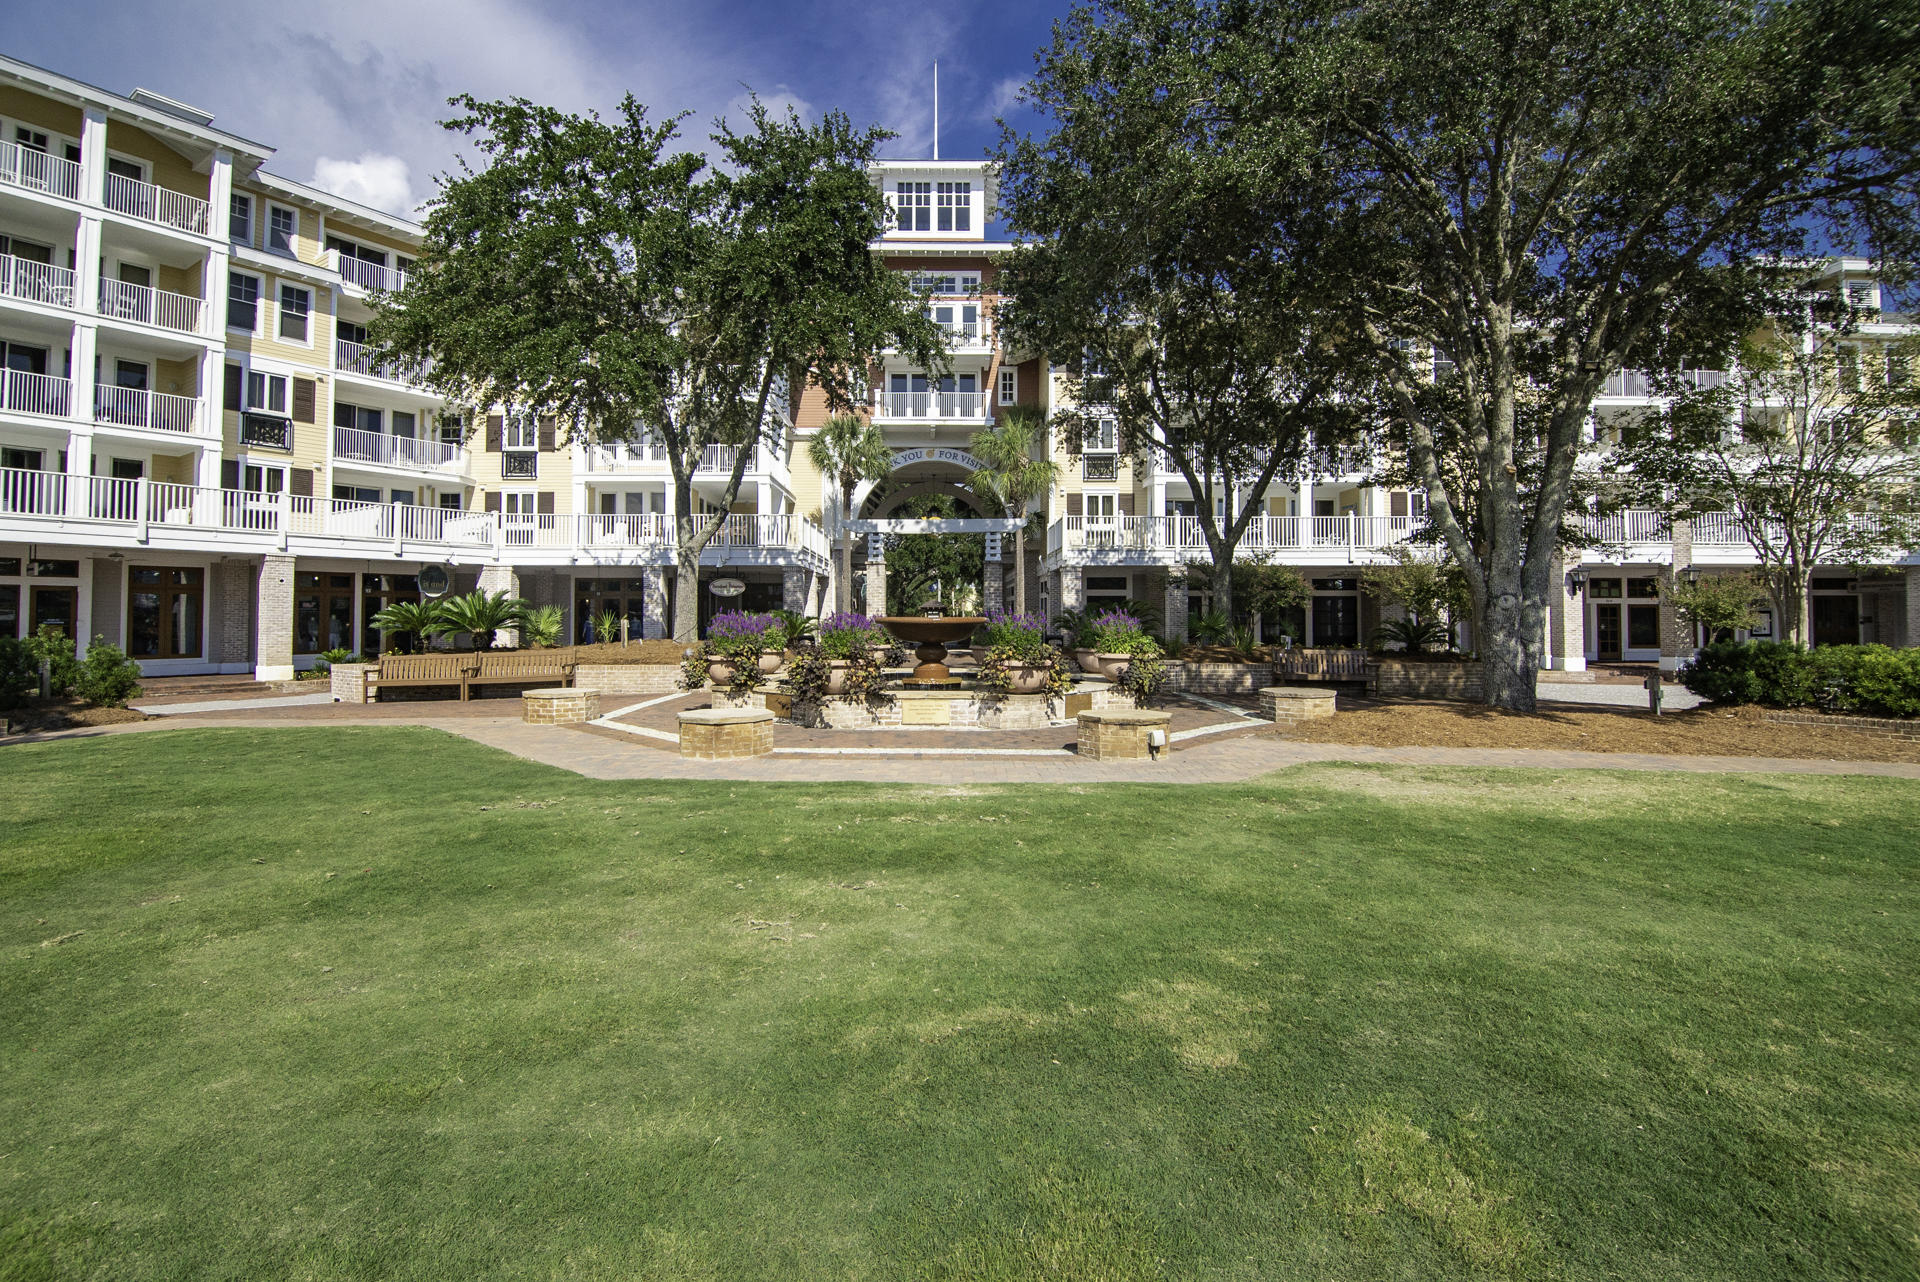 REDUCED AGAIN!!! SELLER WANTS OFFER!!! This spacious 4th floor condo, with an oversize balcony, is located in the  heart of the Sandestin Golf & Beach Resort in the Village of Baytowne Wharf (overlooking Sandestin Golf and Beach Resort). It is the only 2-bedroom condo for sale in Observation Point...AND it includes 1 parking space in the owners PRIVATE GATED area, in the lower level of the garage! 18'' travertine flooring is seamlessly carried throughout the entry way, kitchen, and living area. The master bedroom features an en-suite bath with a double sink vanity. Over-sized windows wrap around the living area inviting the natural light to come in. Enjoy being conveniently located next to the ''Founder's Club'', a privately keyed suite for owners complete with pool table, Large screen television, a full kitchen and balcony overlooking Baytowne Wharf. This condo is also located within steps from the wonderful amenity terrace which boasts a resort style pool, hot tub, fitness center, and a beautiful lawn with a grilling area. Imagine being surrounded by 4 world class golf courses, a marina, biking/walking paths, premier shopping, delicious local cuisine, and the breathtaking beaches of the Emerald Coast, all within a short golf cart ride! Separate storage cage also included. Buyer to verify all information and dimensions. This condo being sold furnished.